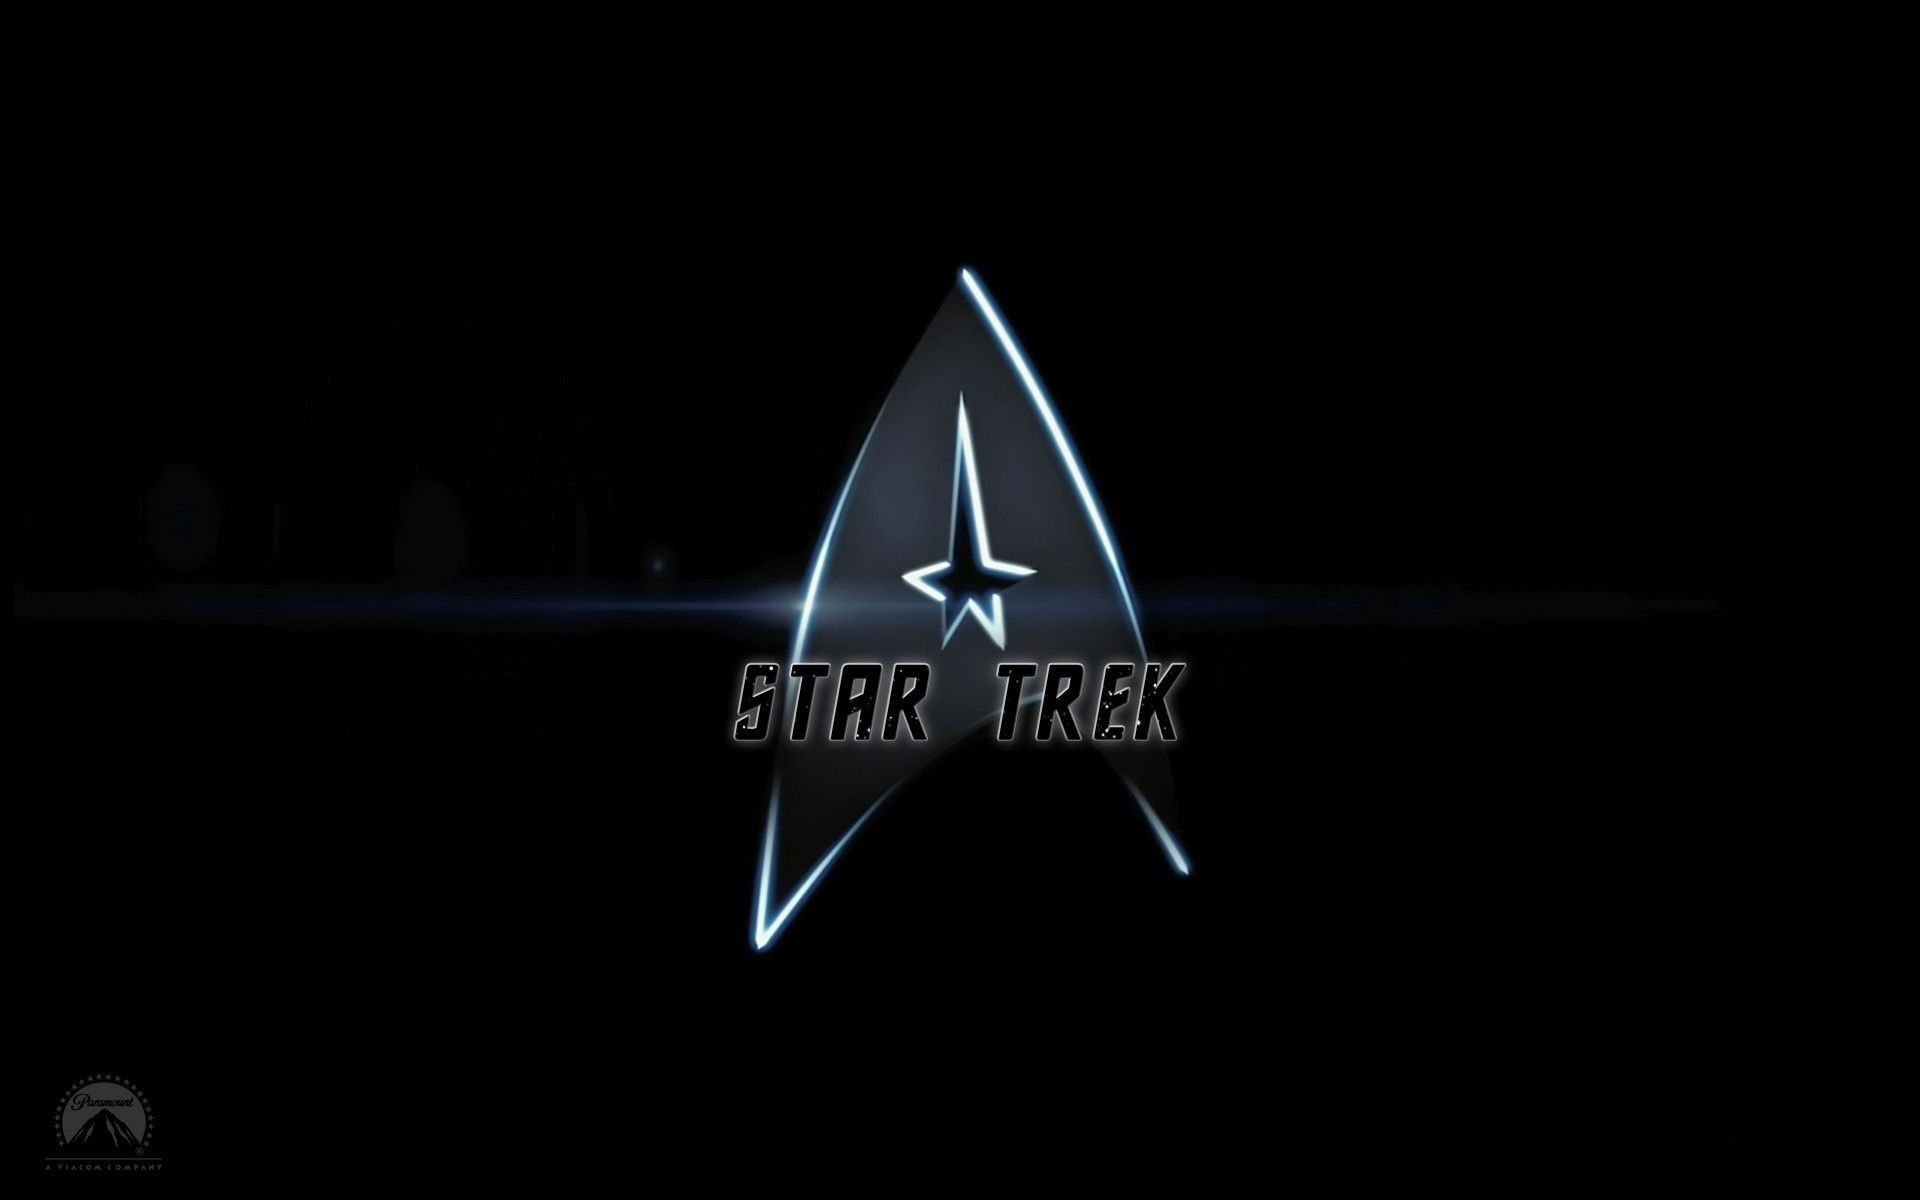 star trek wallpaper 4k